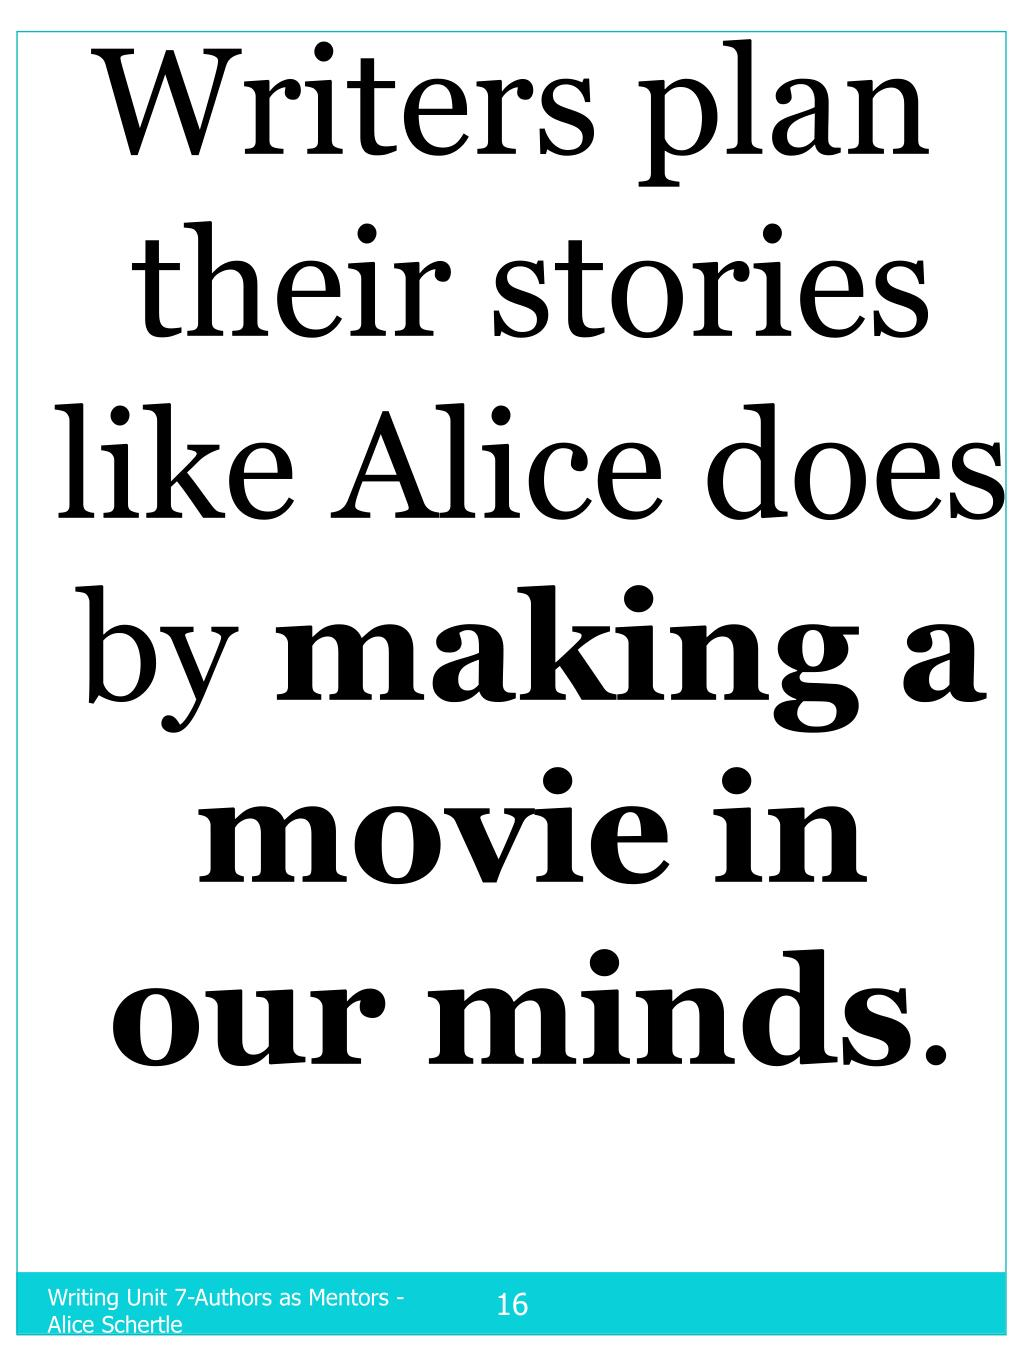 Writers plan their stories like Alice does by